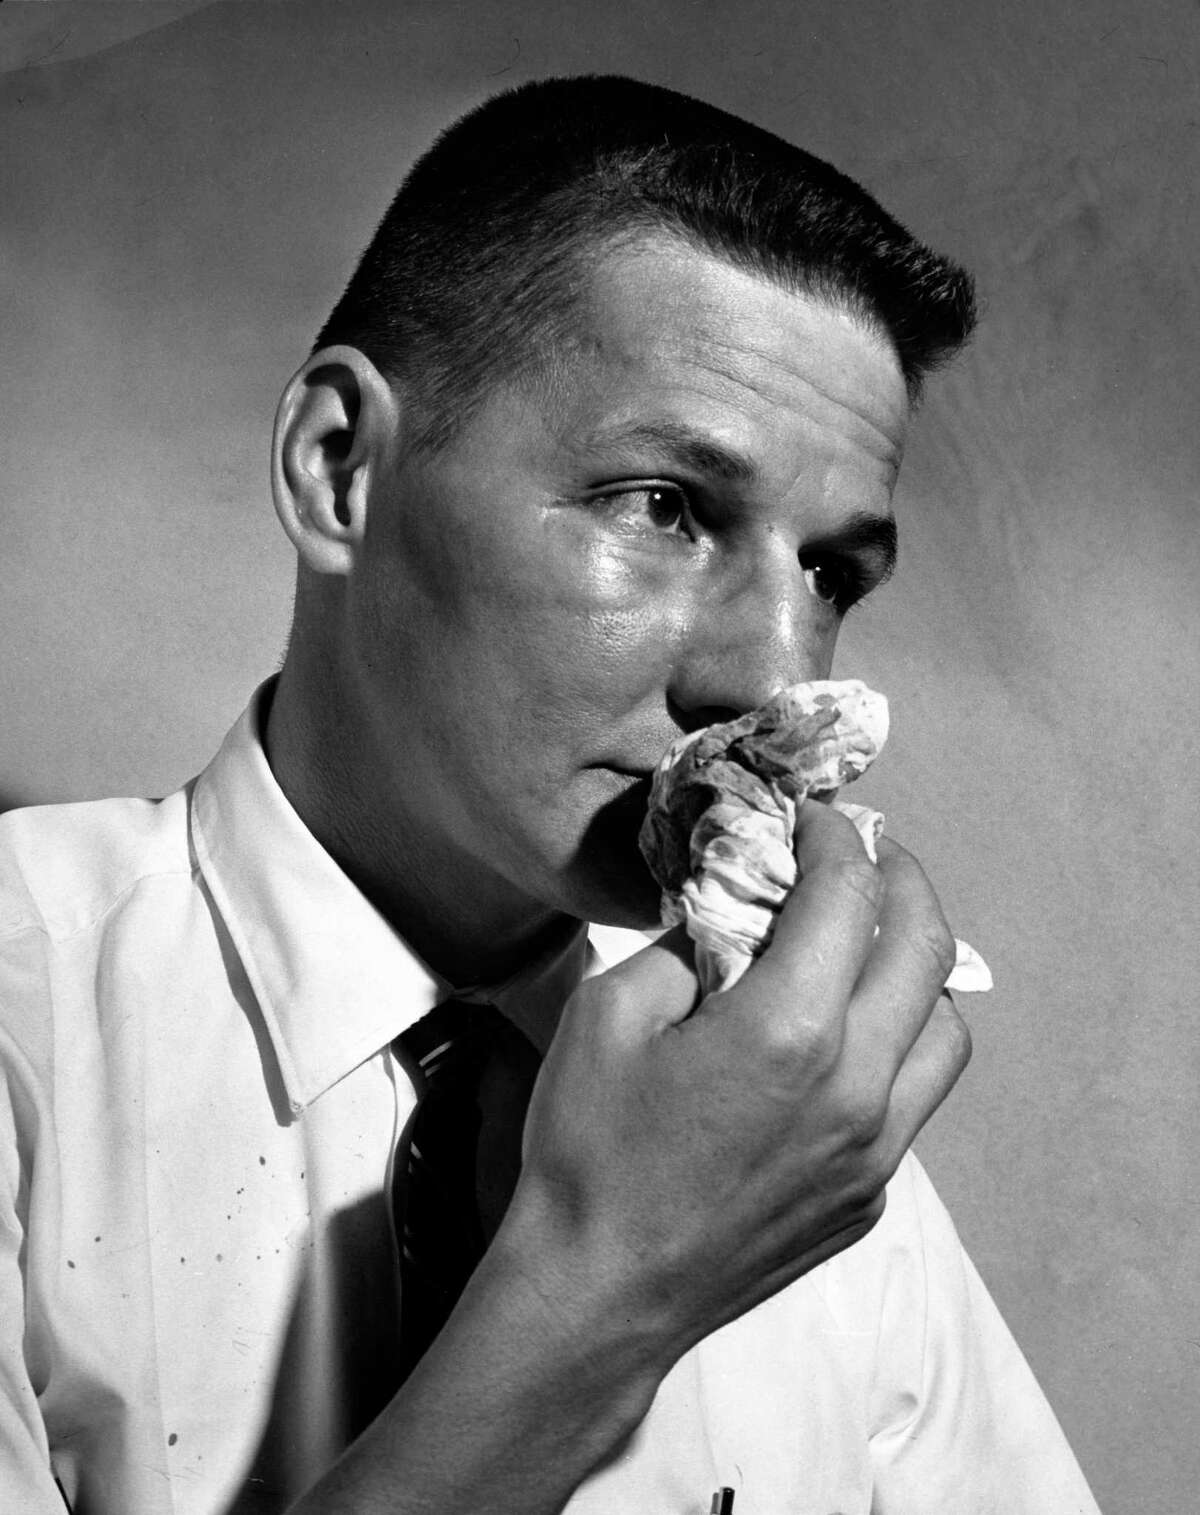 09/08/1964 - Houston Post reporter Gene Goltz wipes his bloody nose after being assaulted by Pasadena police and fire commissioner Quincy James outside the Harris County Grand Jury room.